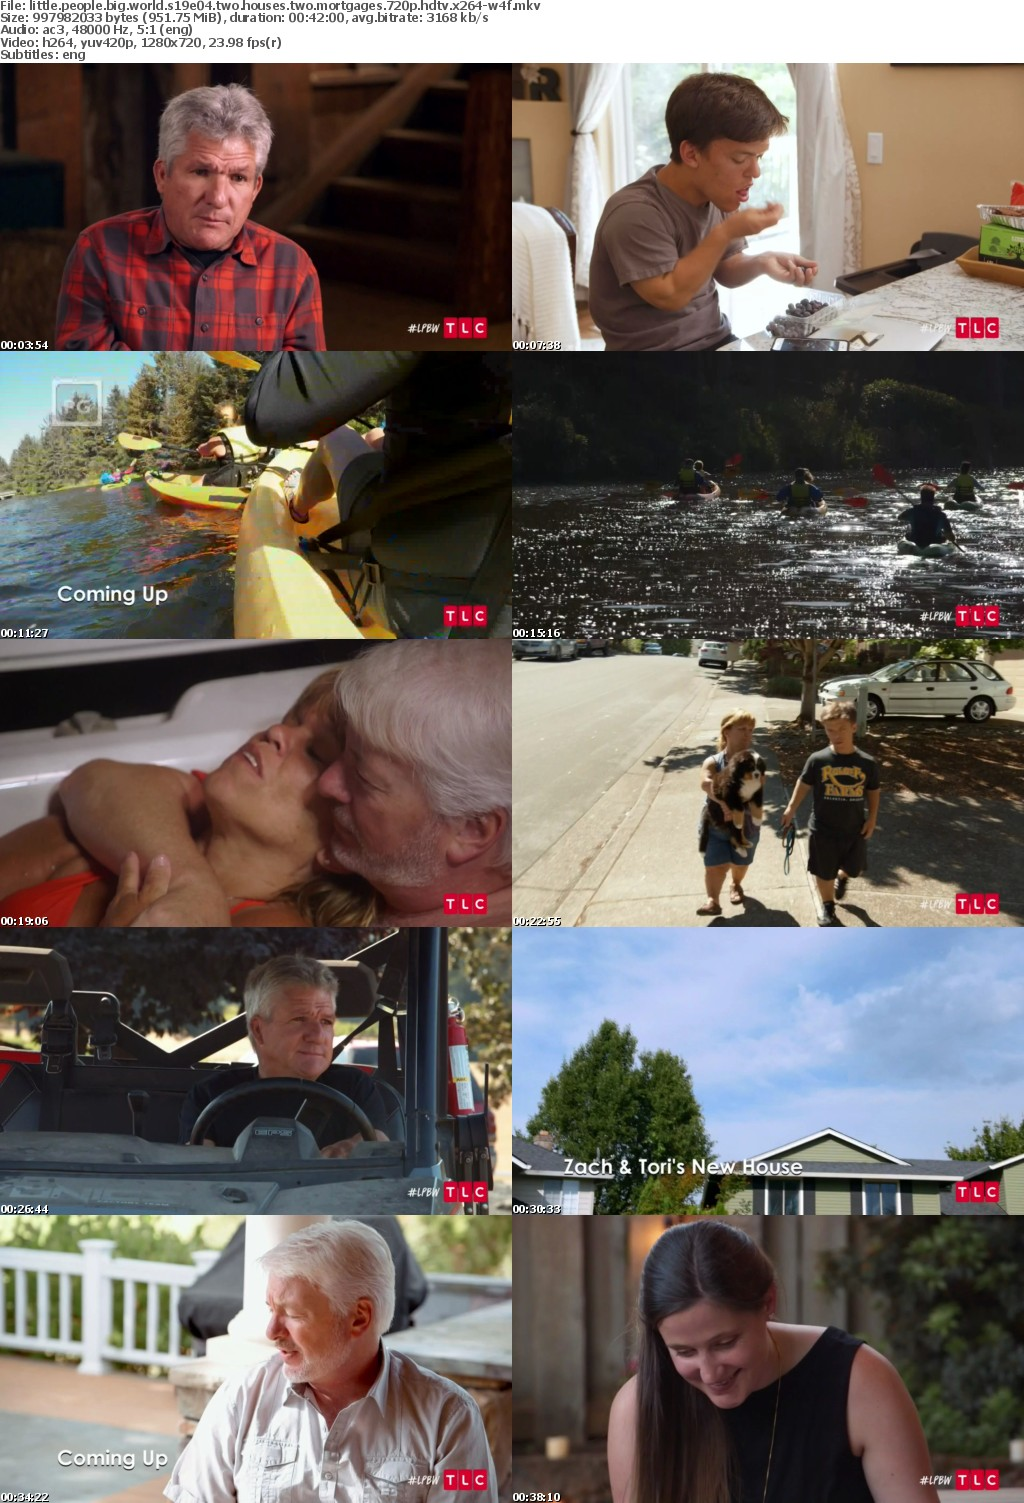 Little People Big World S19E04 Two Houses Two Mortgages 720p HDTV x264-W4F